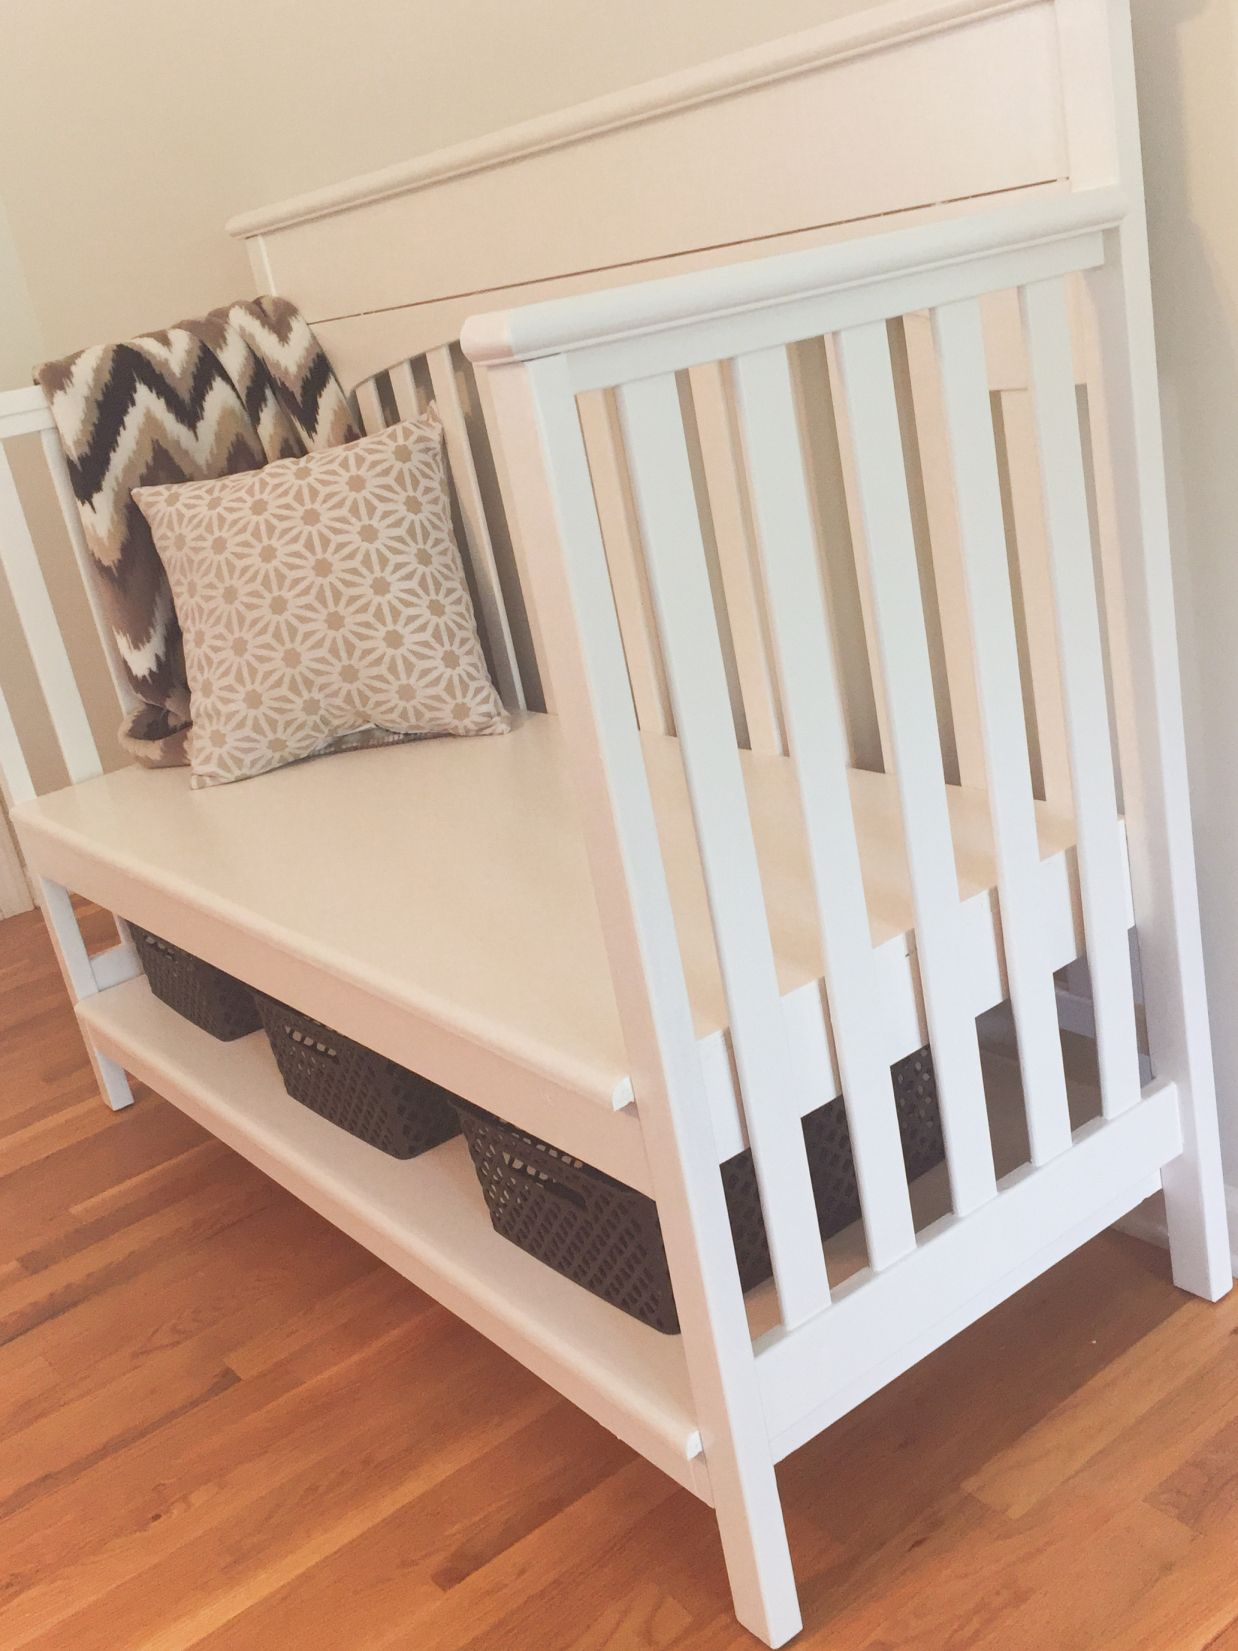 Repurpose Crib To Bench Diy Navy Wife Military Nurse